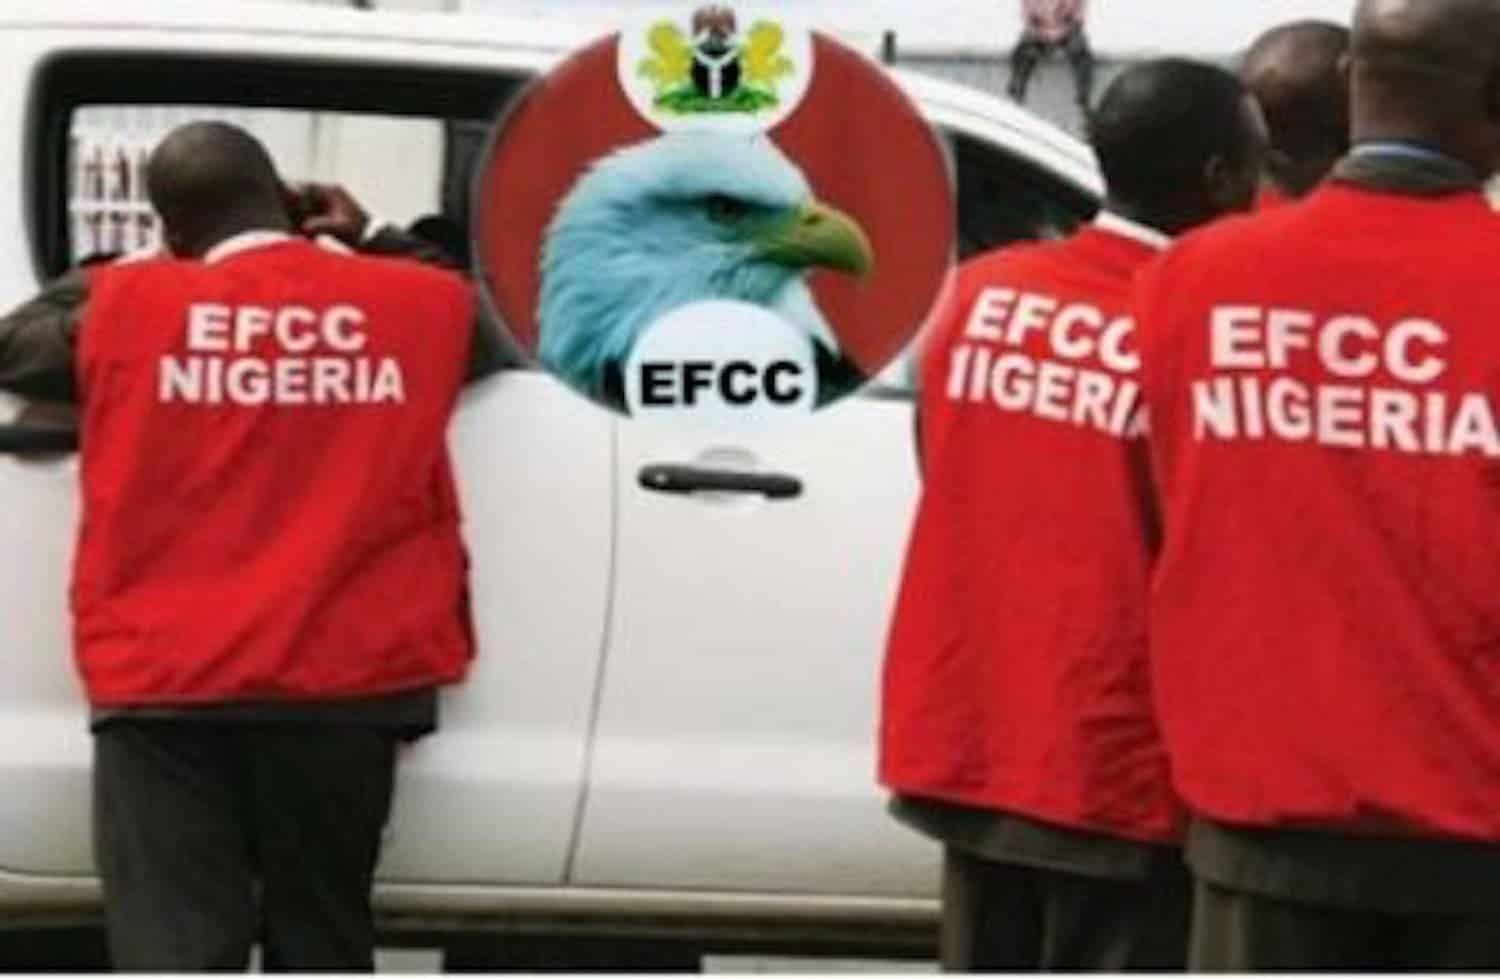 EFCC Past Questions and Answers PDF Download for Screening Exercise